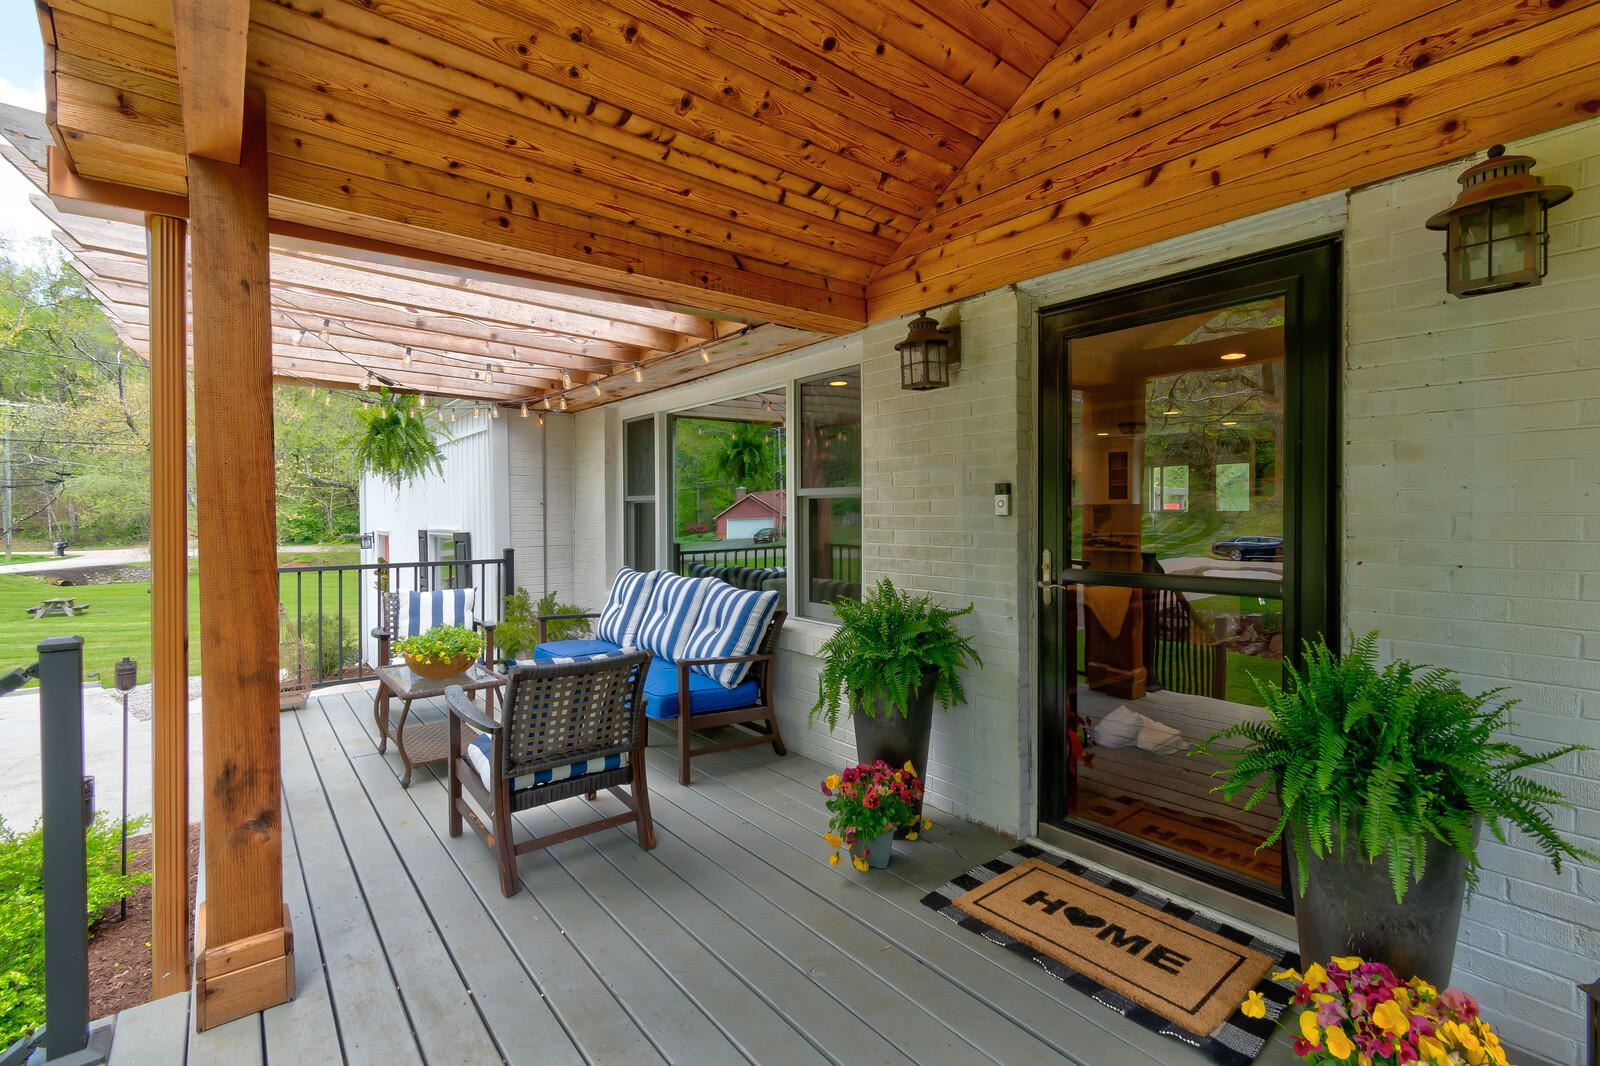 Photo of 4808 Deanbrook Rd, Knoxville, TN 37920 (MLS # 1149572)